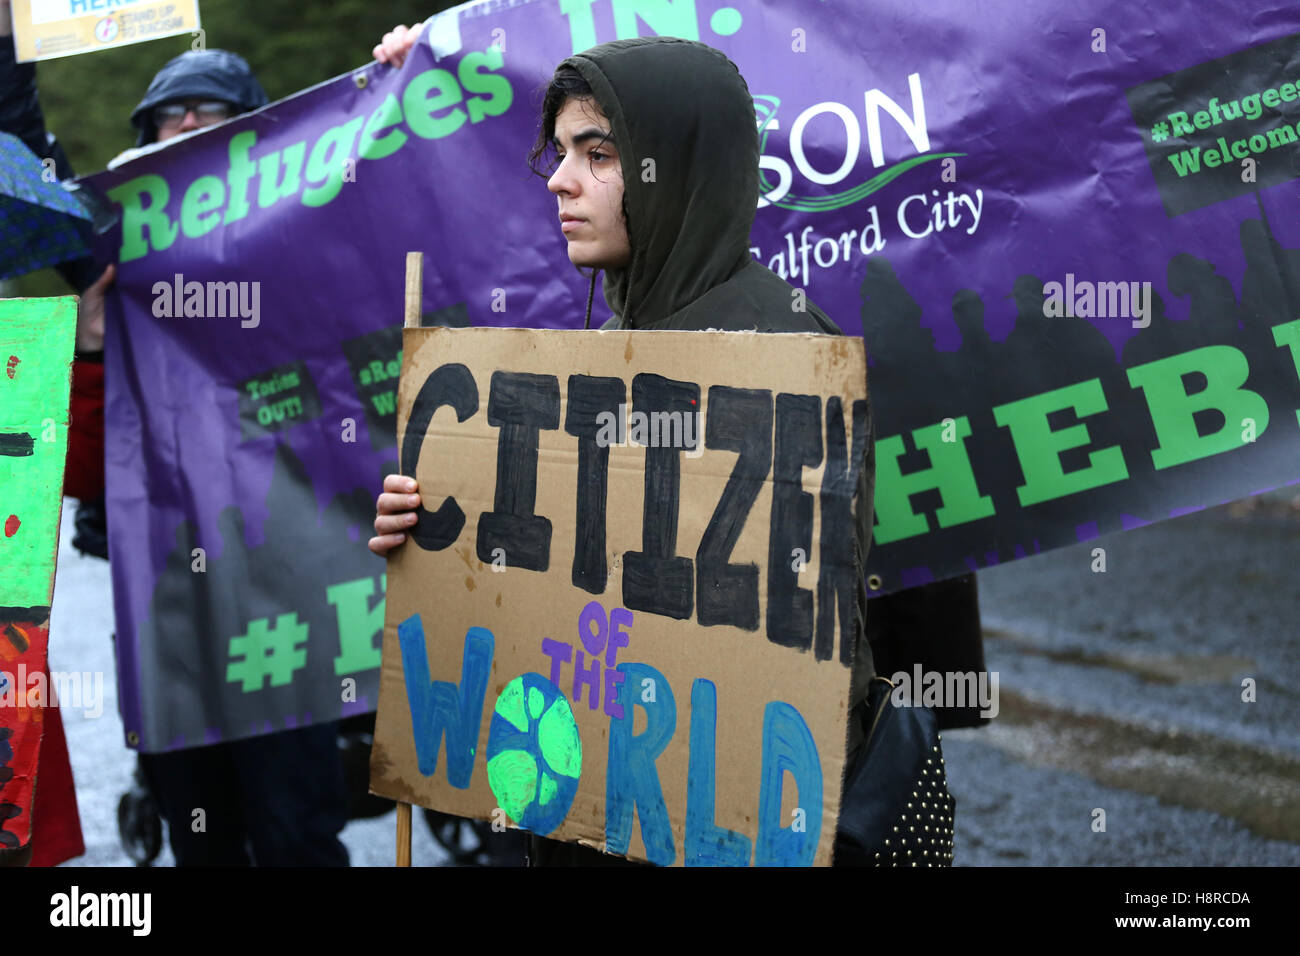 Salford, UK. 16th November, 2016. Campaigners support Dianne Ngoza, a Zambian national, who has lived in the UK Stock Photo